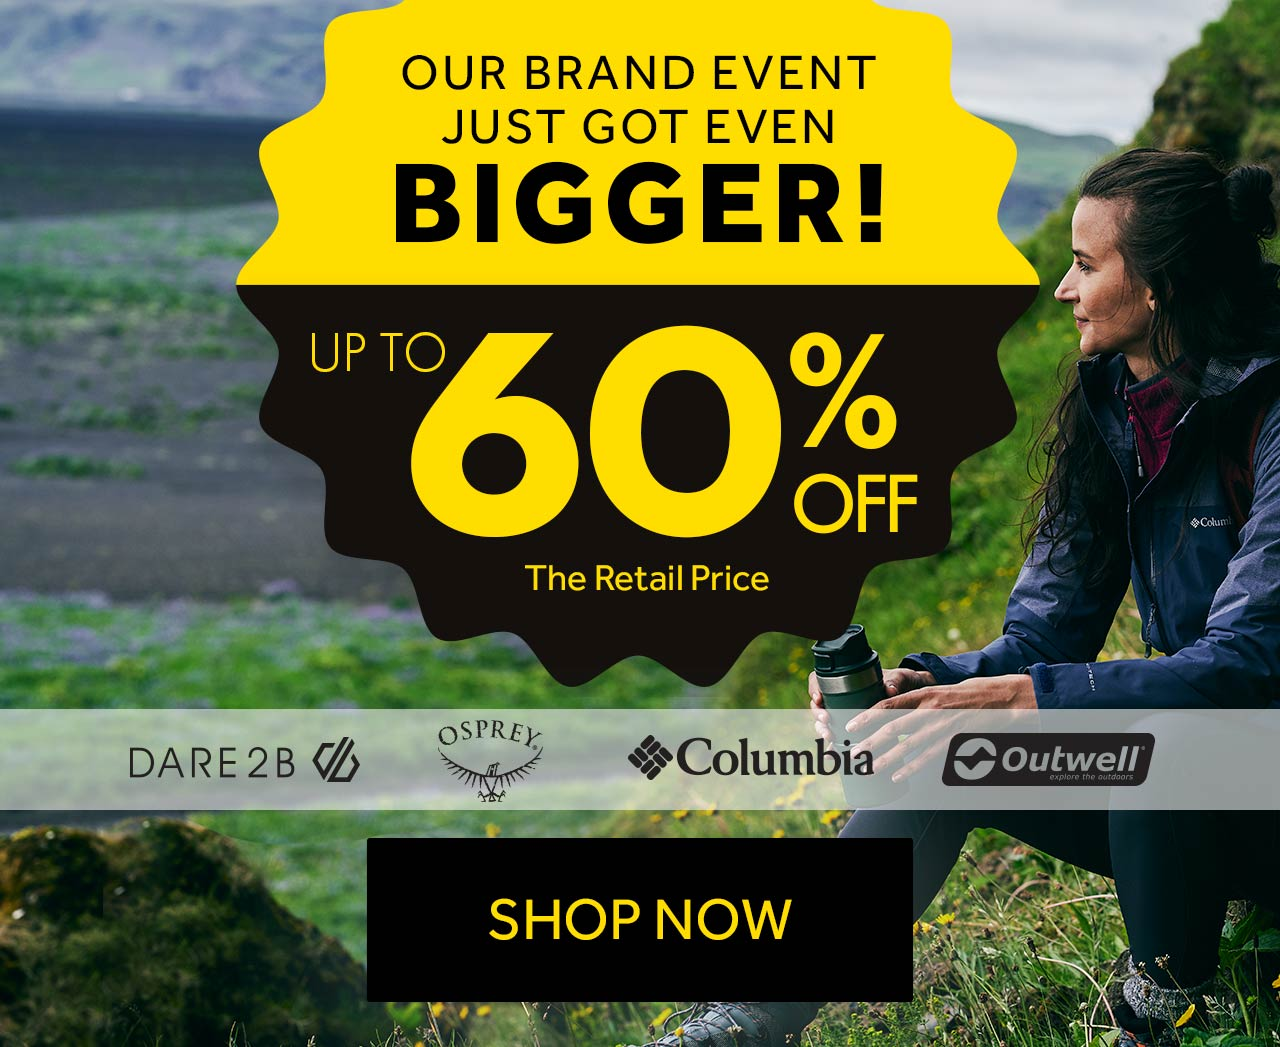 Our Brand Event Just got Bigger!